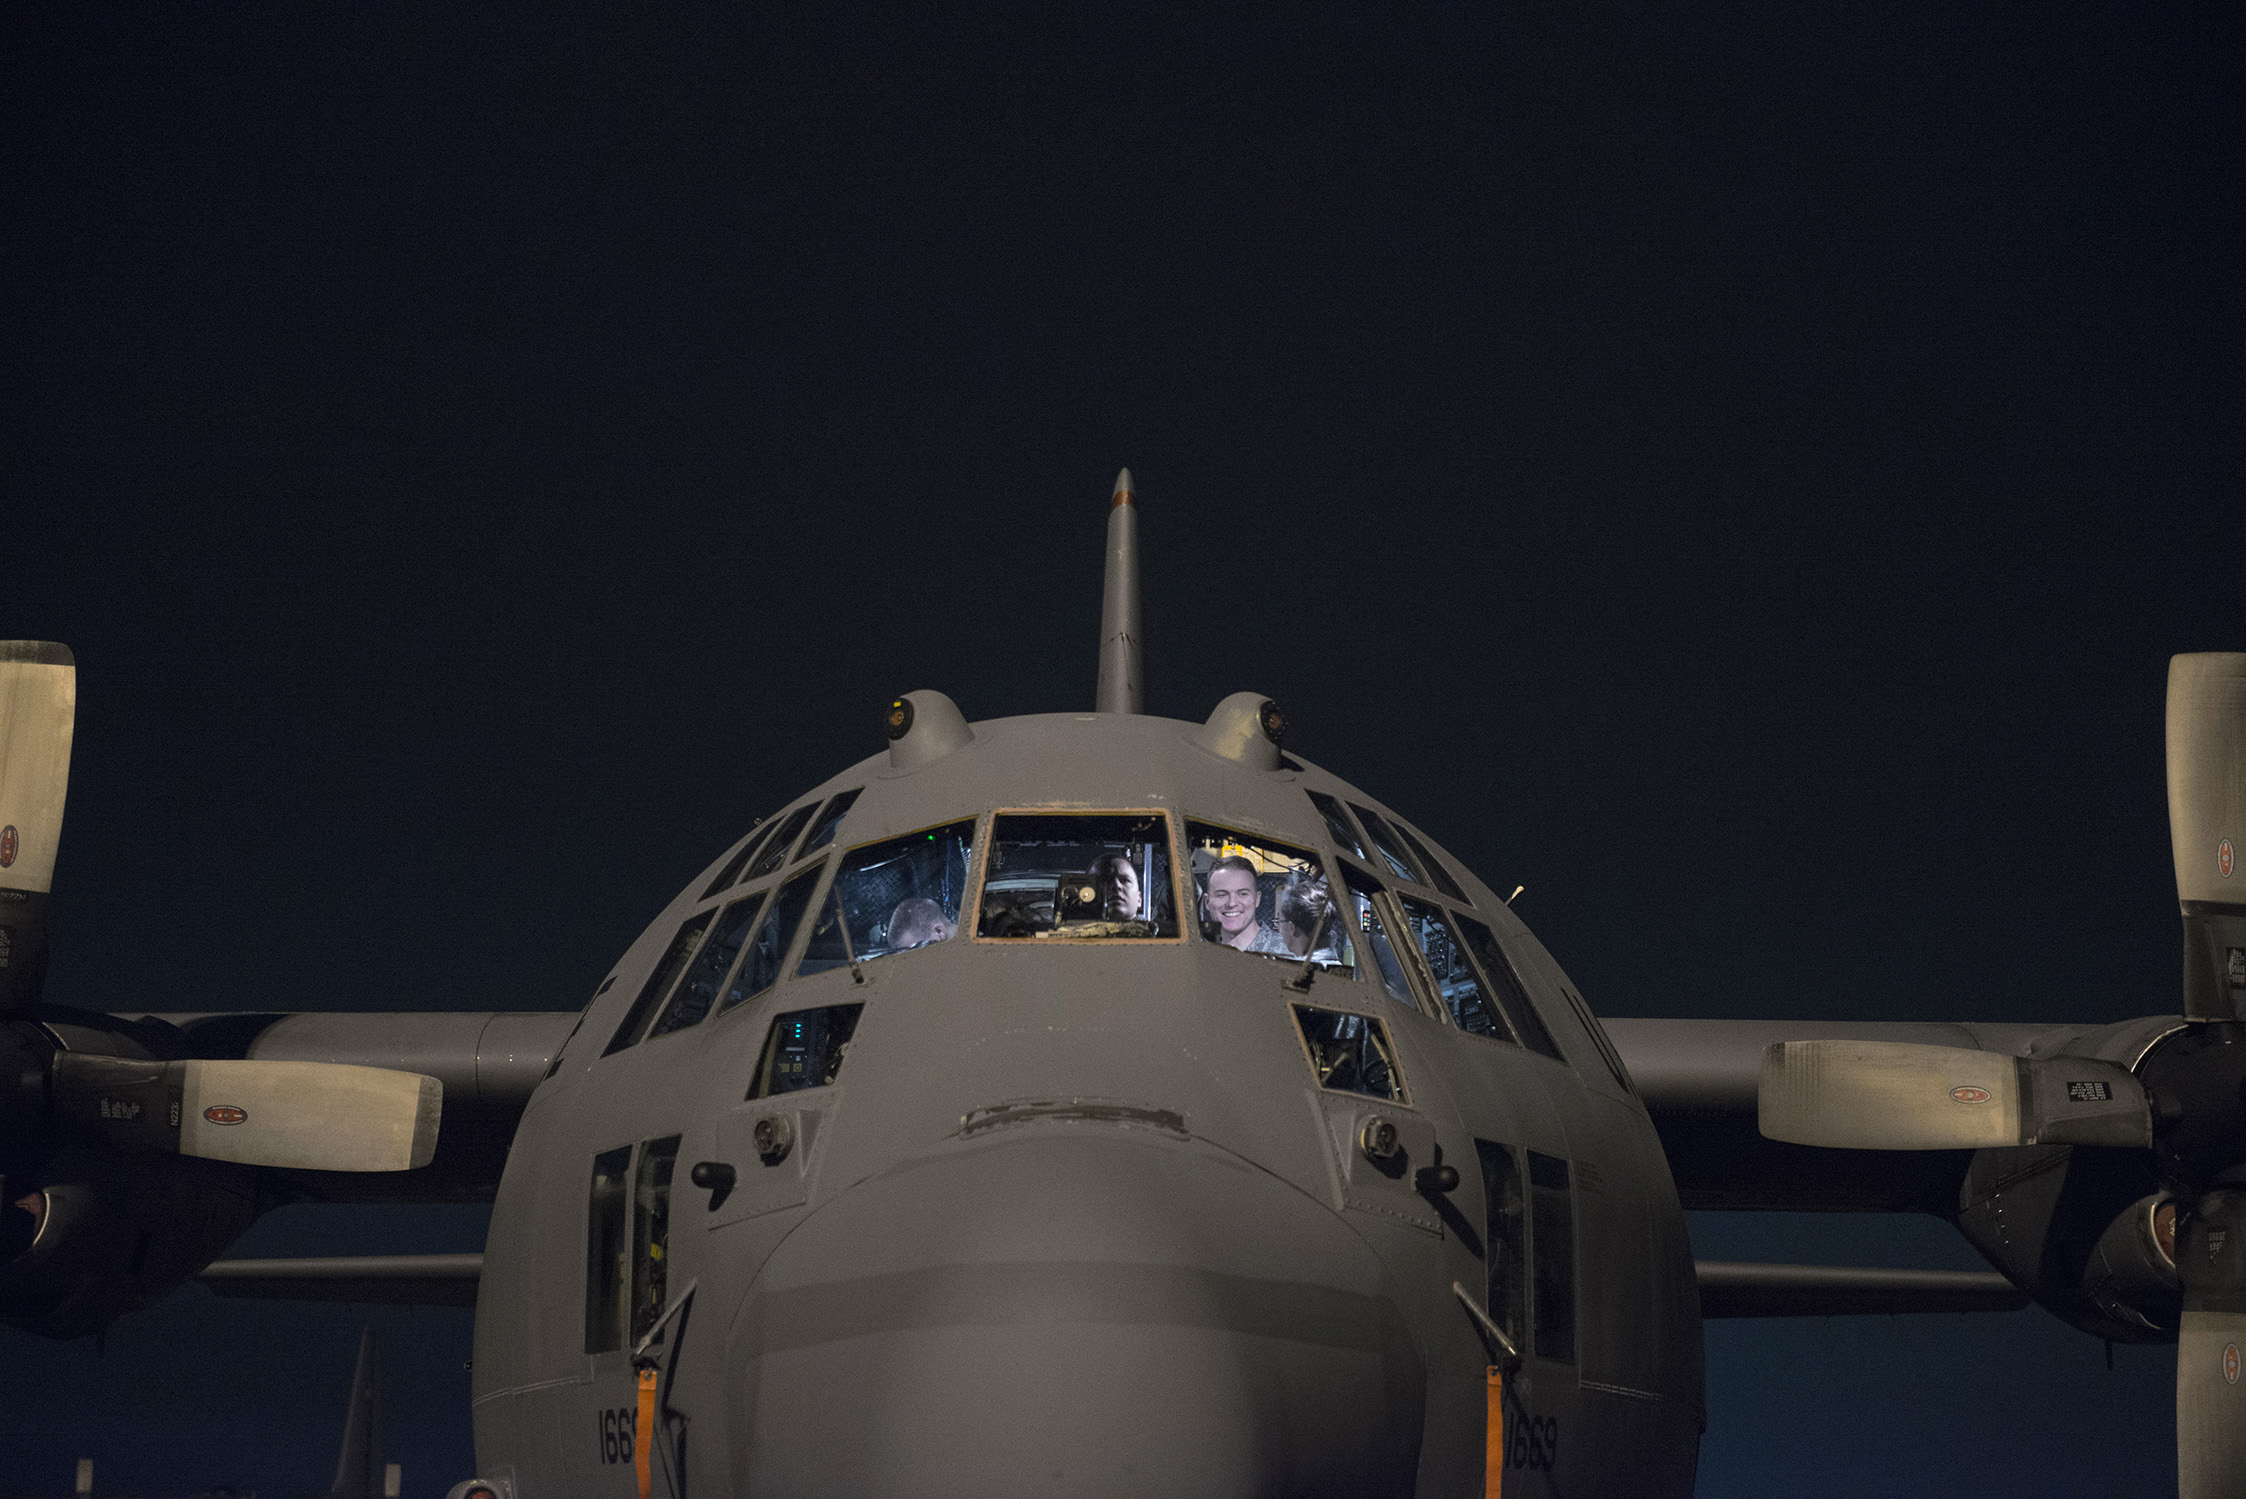 Members of the 374th Aircraft Maintenance Squadron test and replace parts of a C-130 Hercules cockpit during VIGILANT ACE 16 at Yokota Air Base, Japan, Nov. 2, 2015. Maintainers with the 374 AMXS work 24 hours a day, 7 days a week, to ensure their C-130 fleet is ready to respond at a moment's notice for any requirement in the Indo-Asia Pacific region. The exercise tested this readiness and Yokota's ability to receive and deploy forces throughout the theater. (U.S. Air Force photo by Staff Sgt. Cody H. Ramirez/Released)